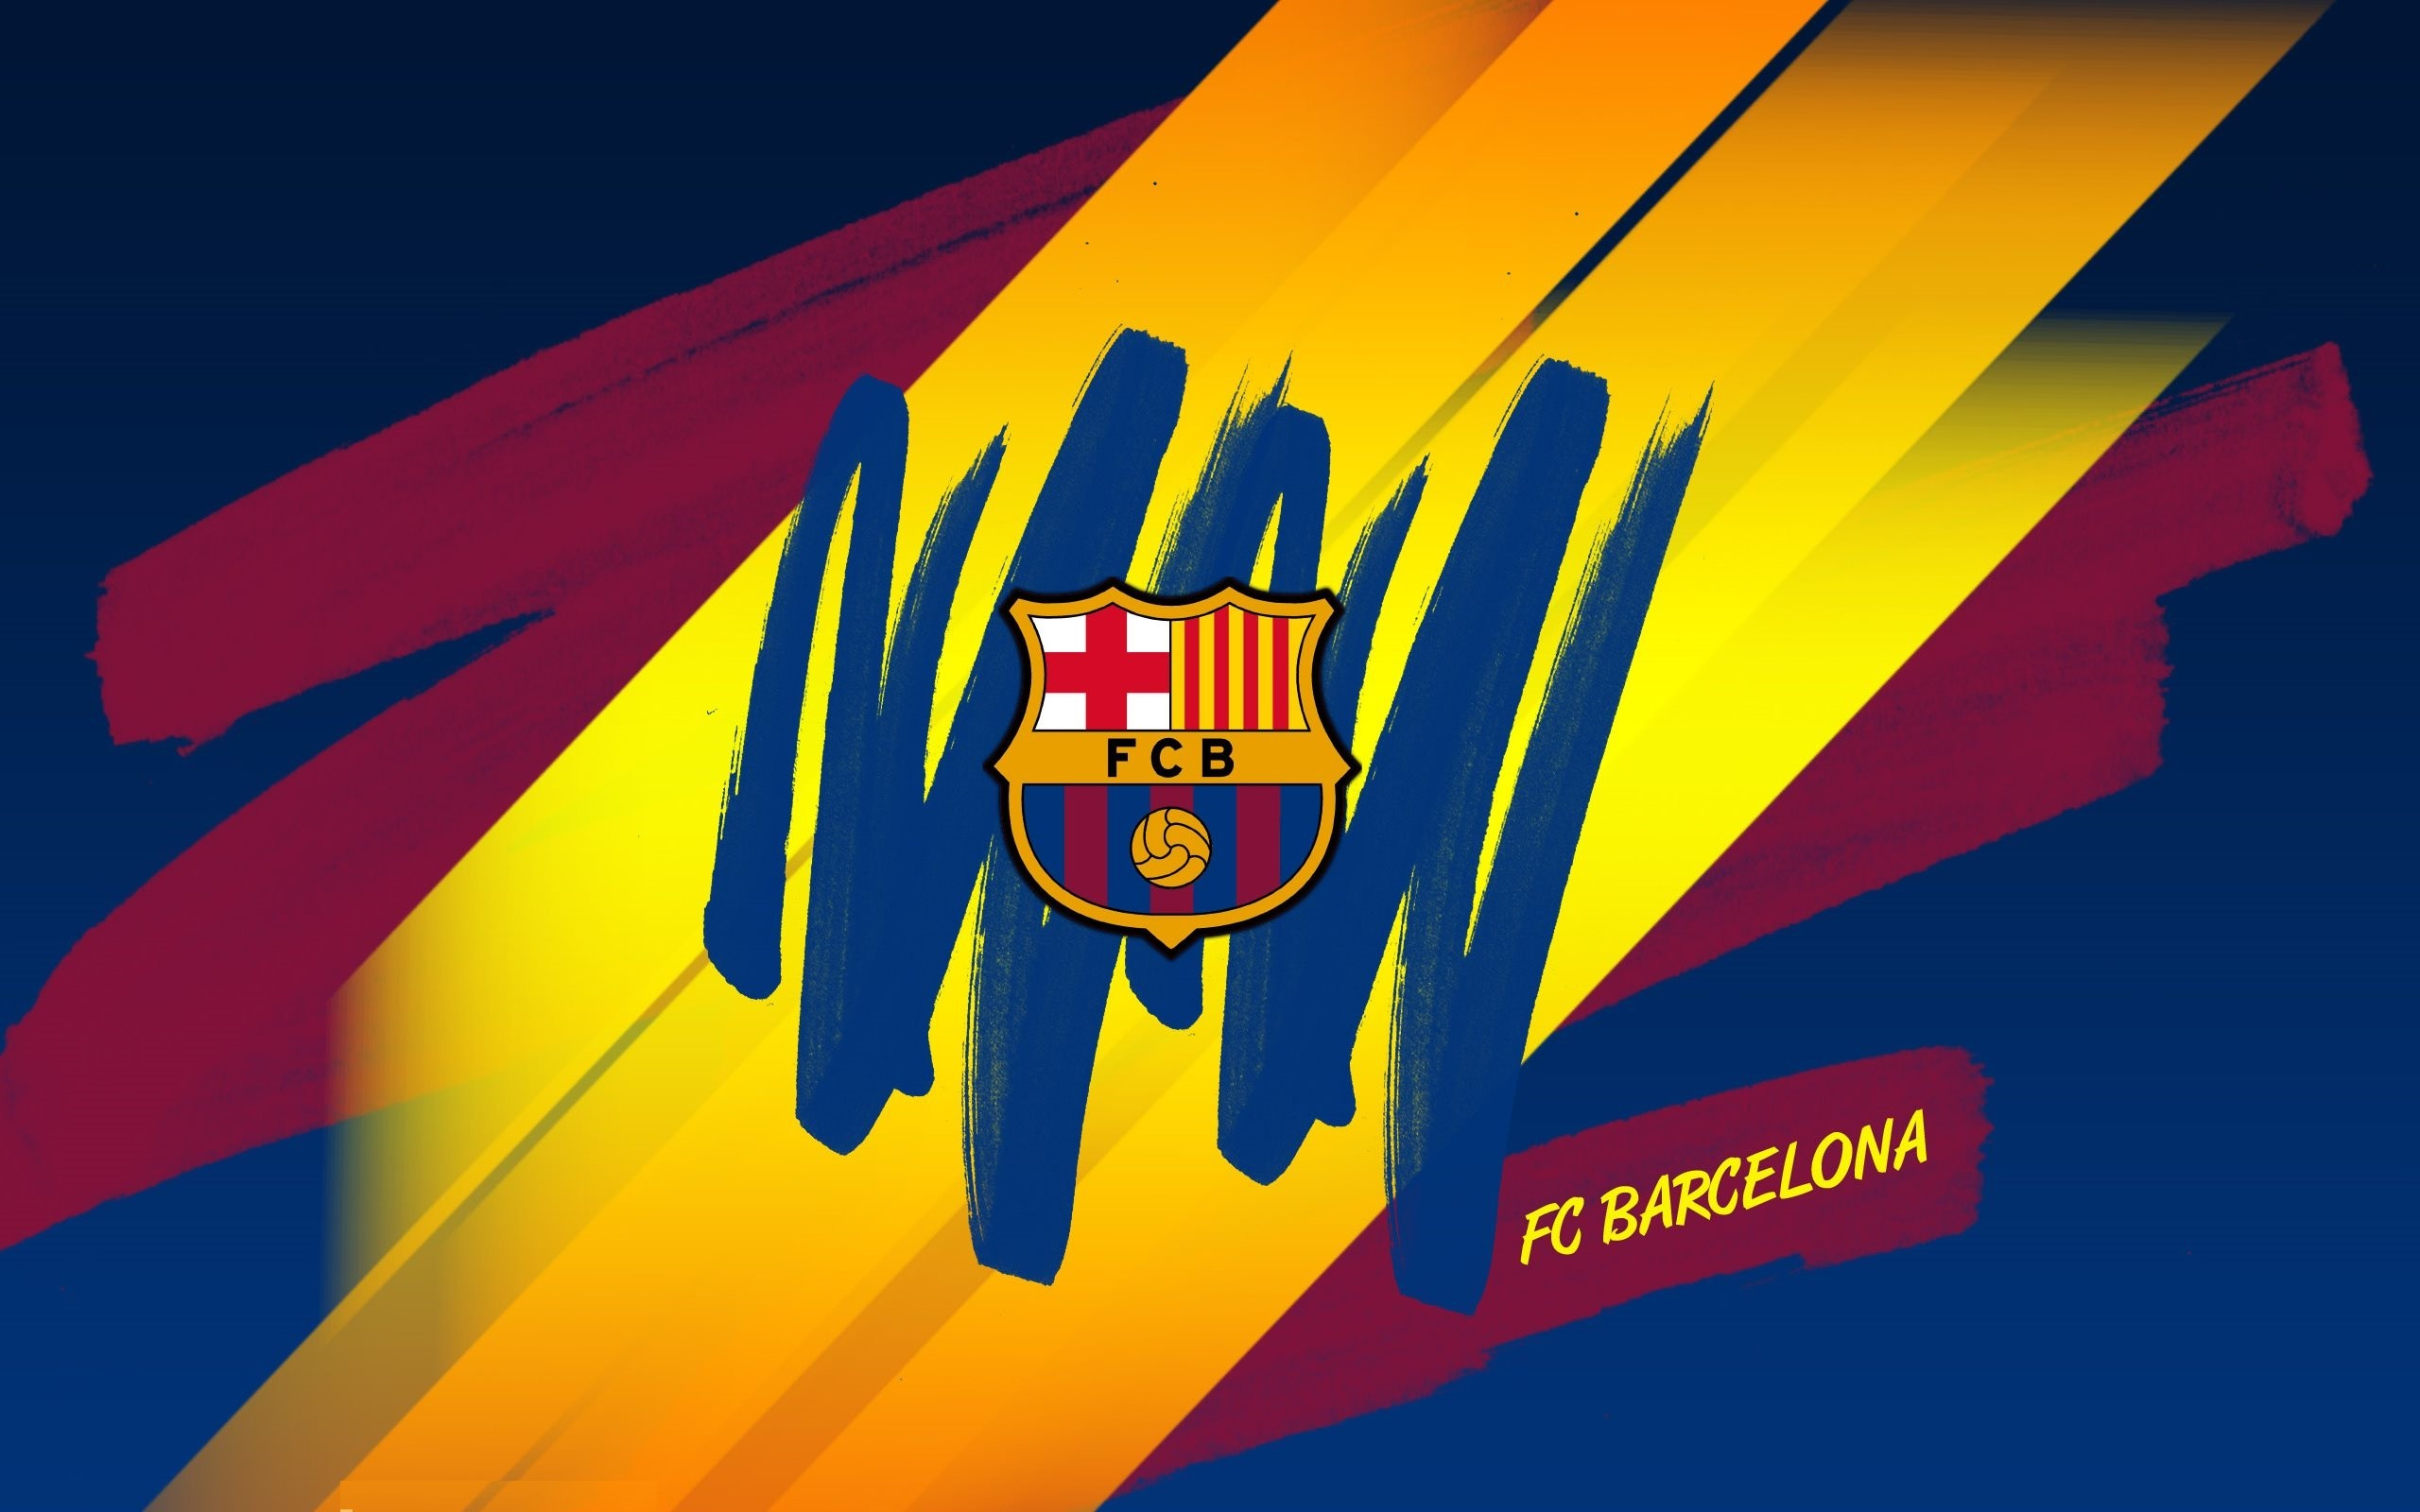 Res: 2560x1600, Fc Barcelona 2017 Wallpapers Mobile To Download Wallpaper